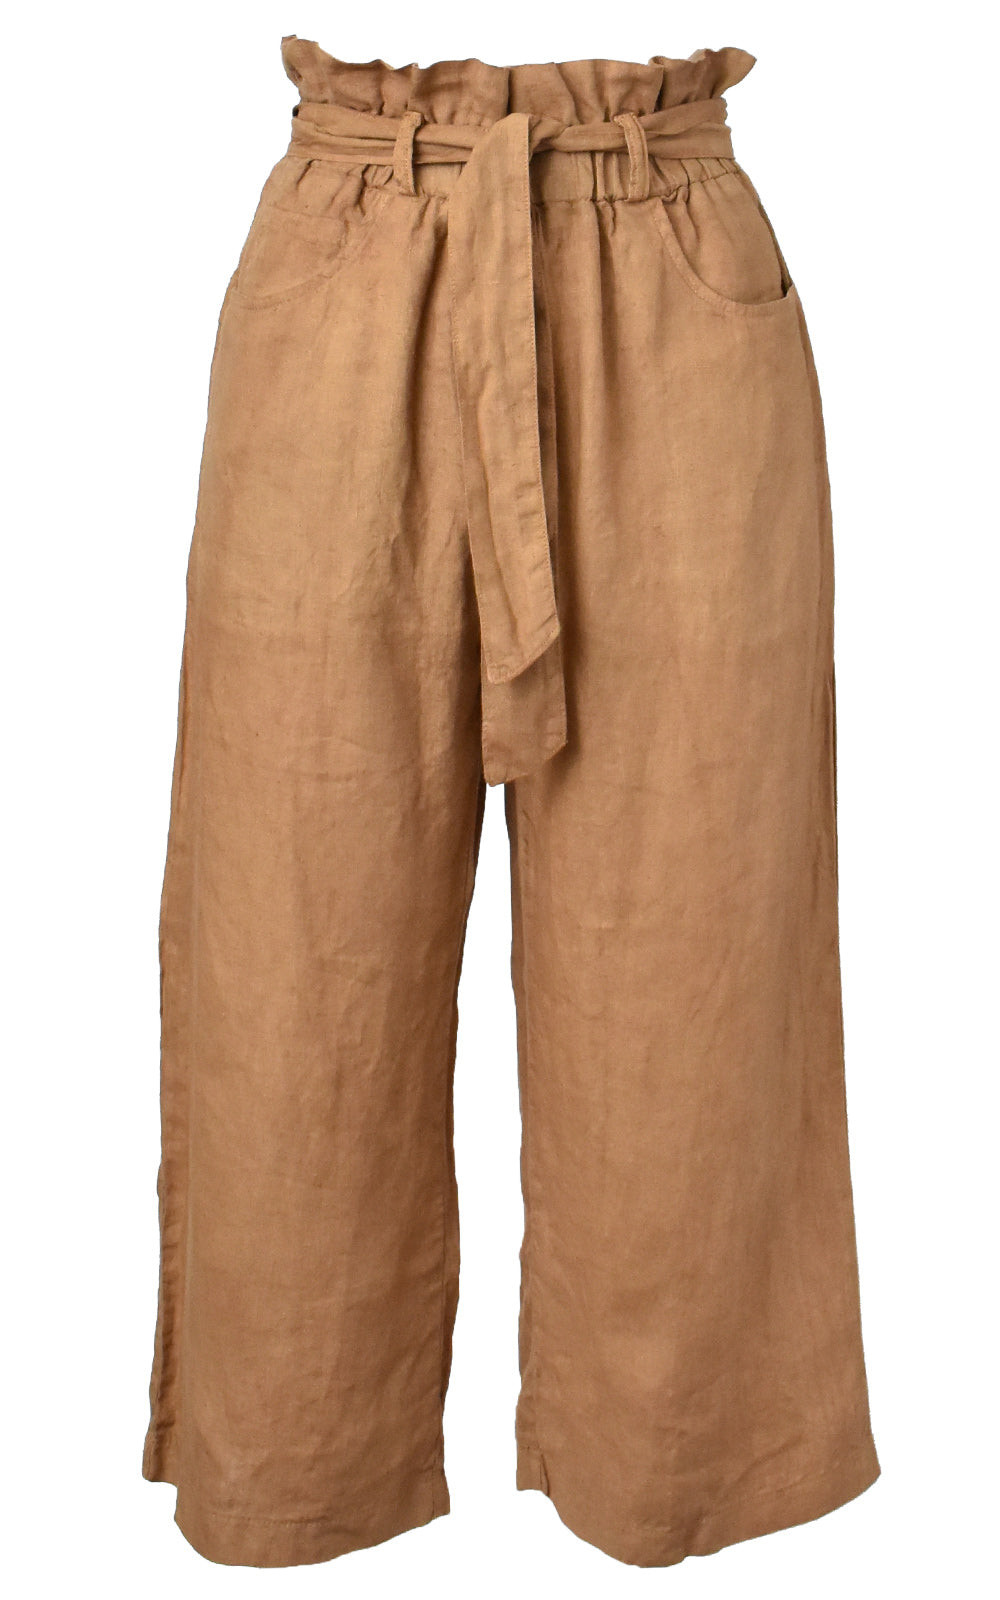 Amadi Michaela Crop Waist Tie Camel Paper Bag Pants